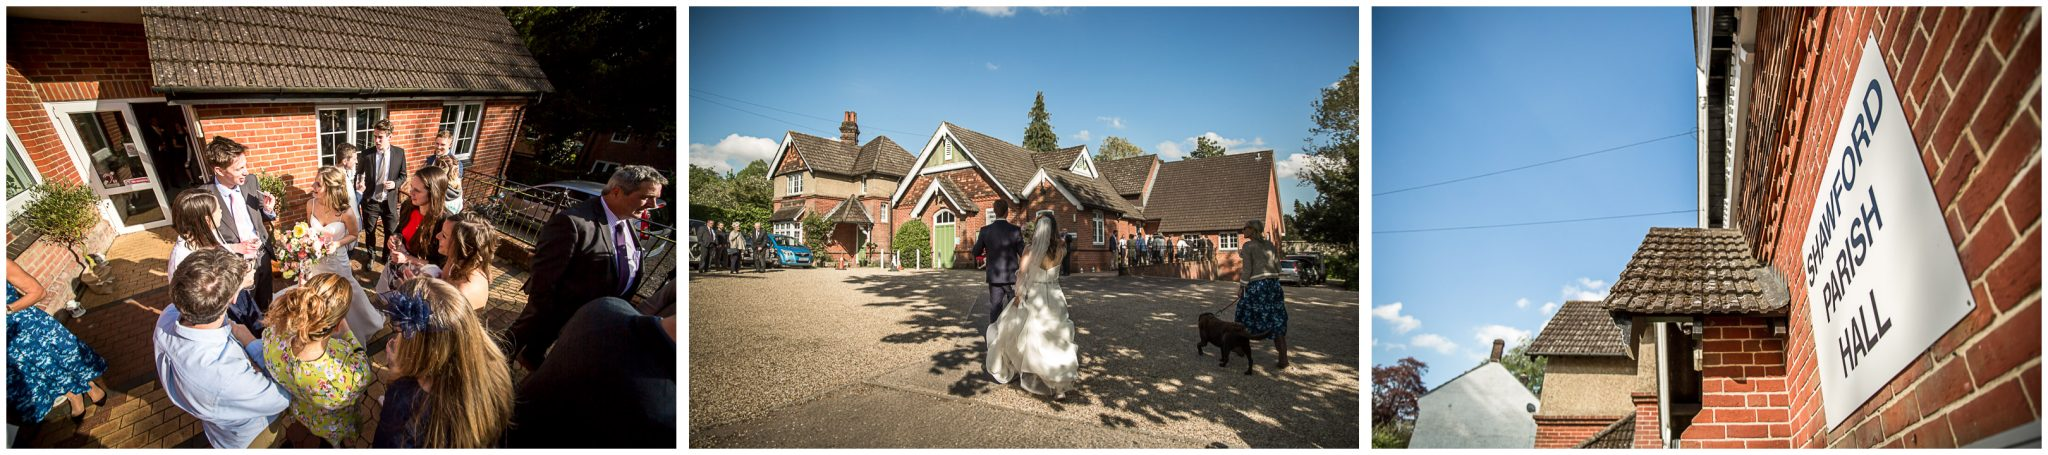 Bride, groom and guests arrive at village hall